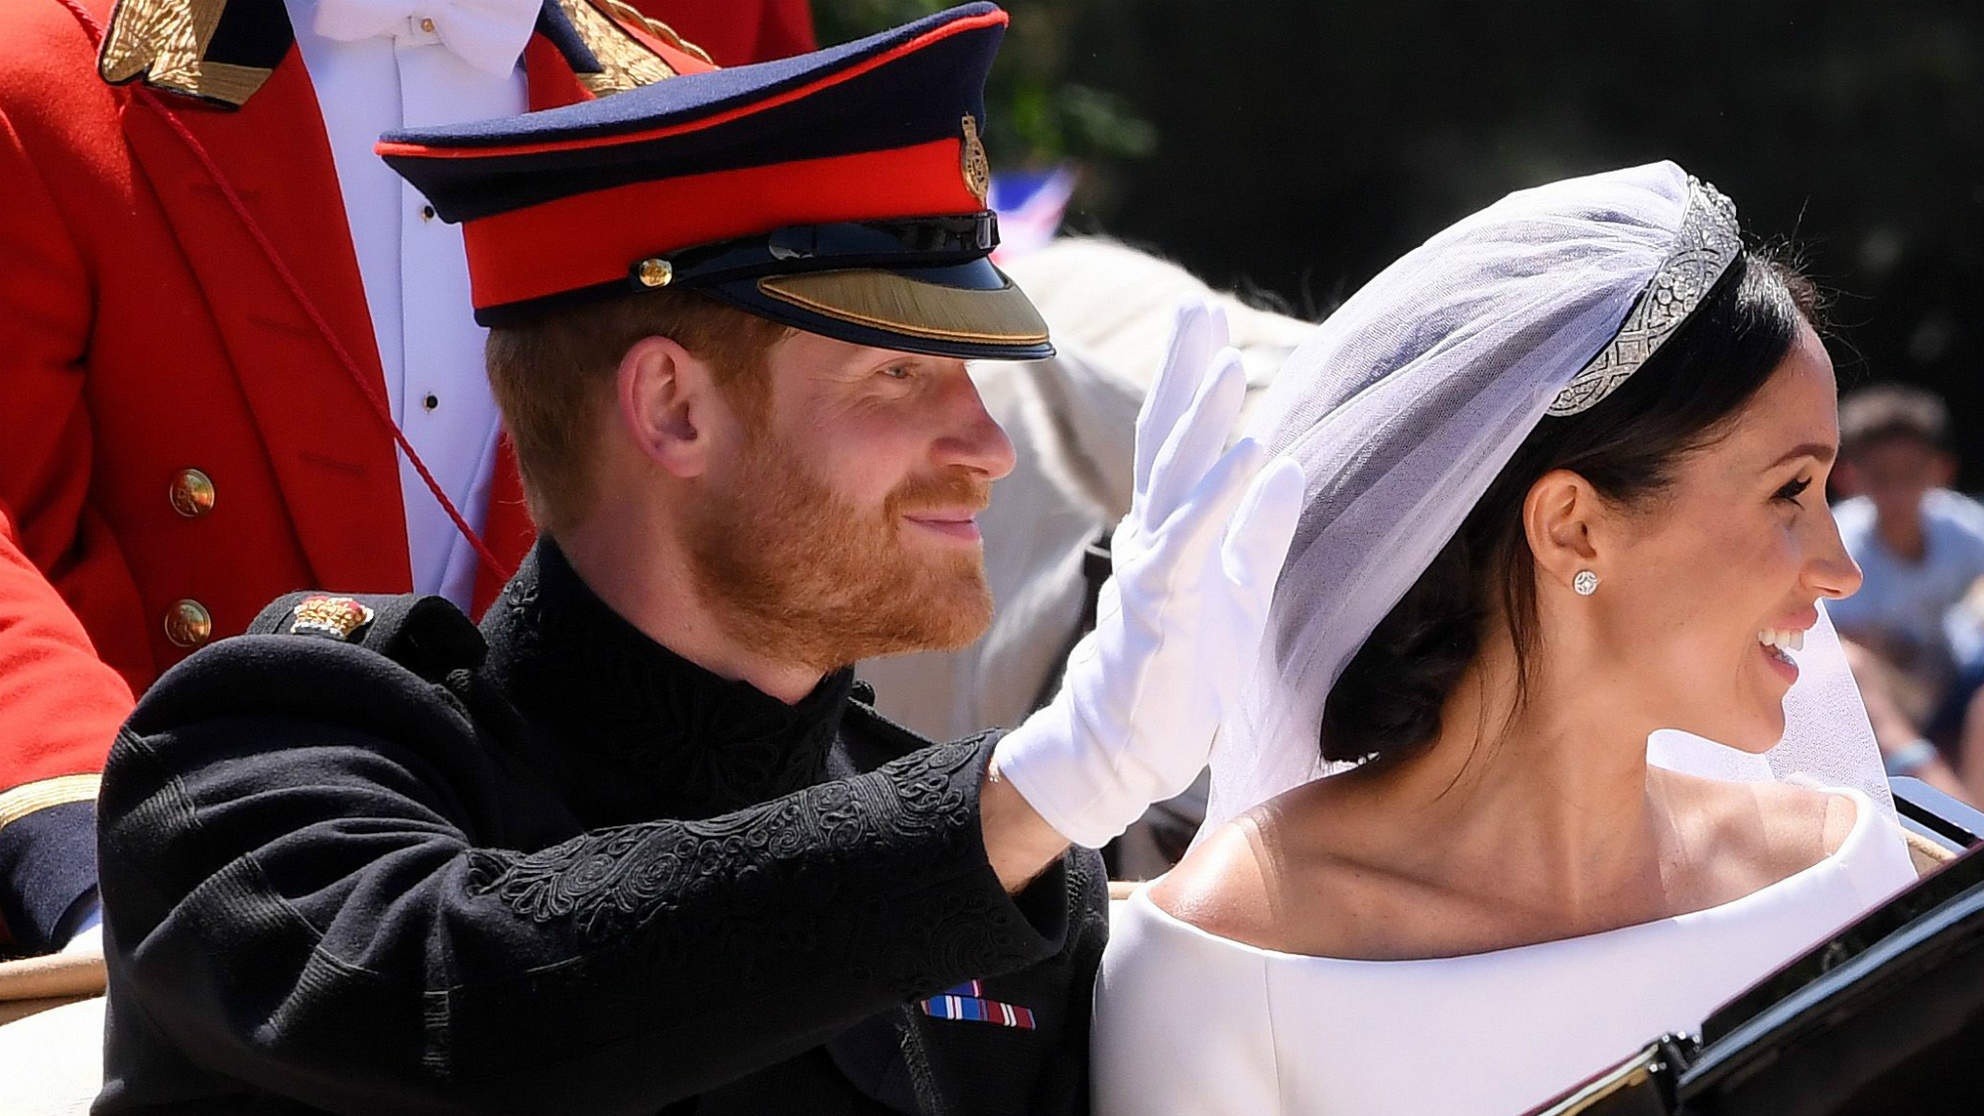 The Queen Made This Special Exception For Prince Harry At The Royal Wedding